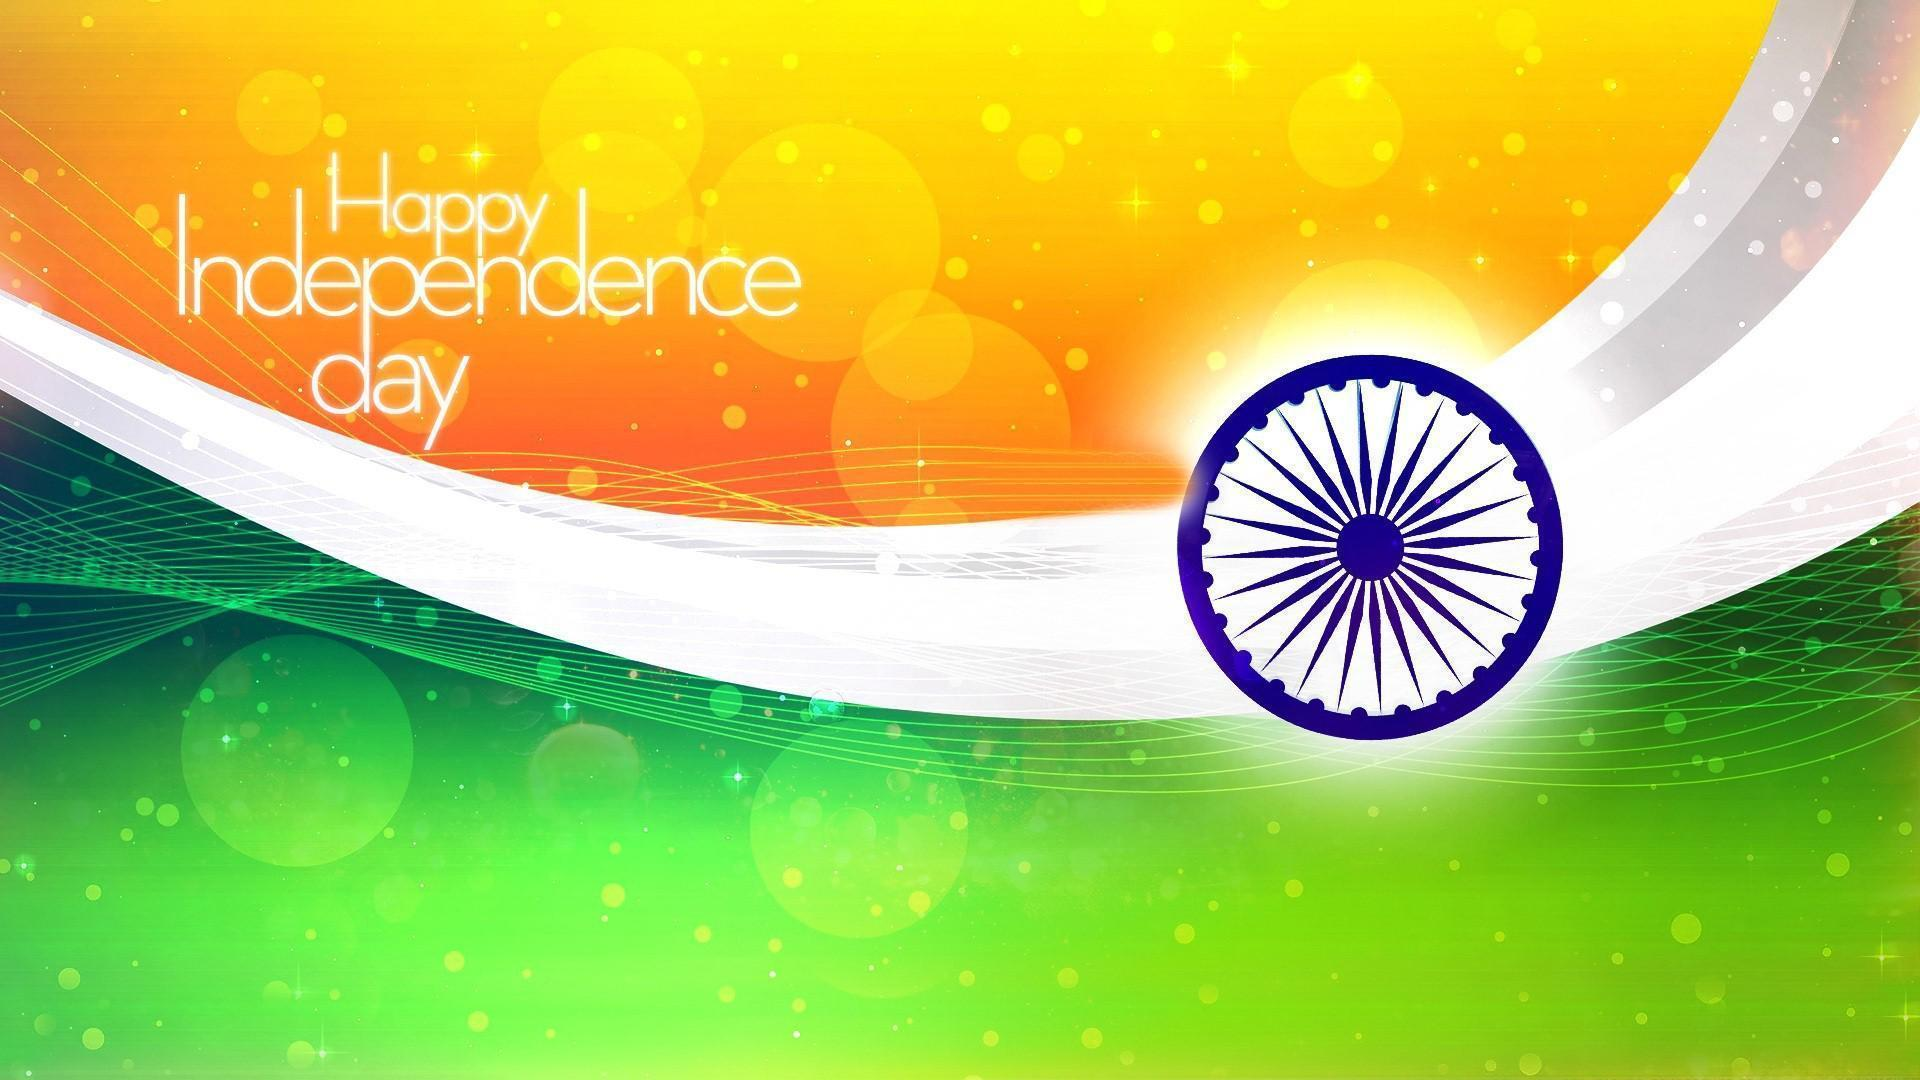 Independence Day Wallpapers 2015 With Indian Army ...